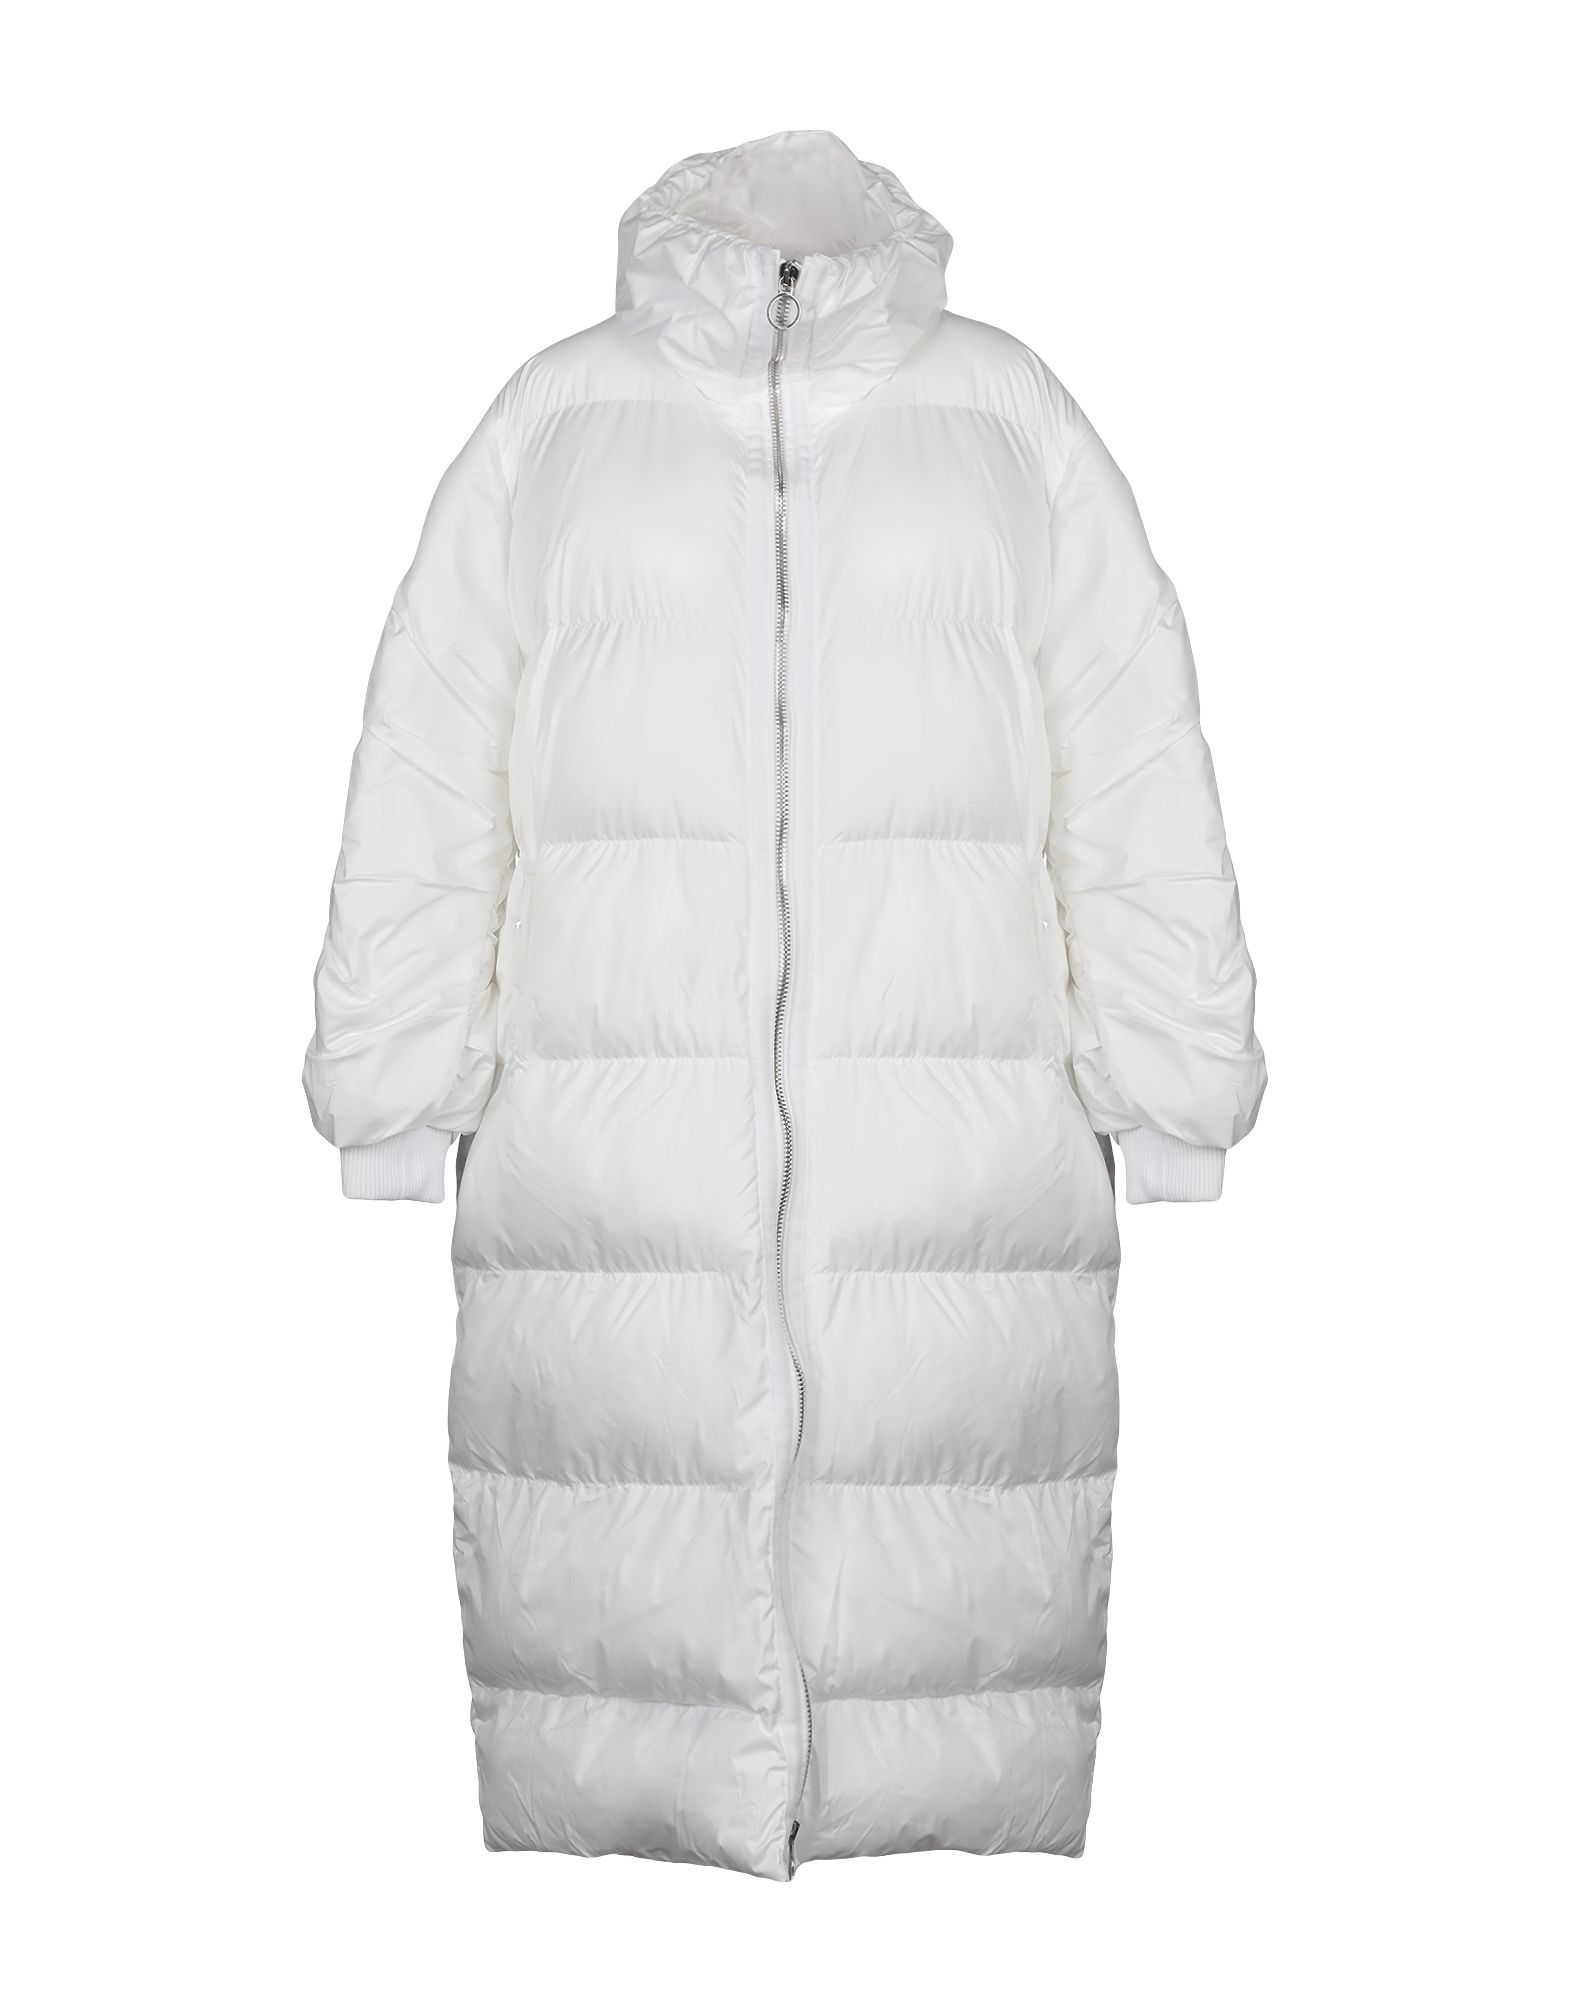 PINKO Synthetic Down Jackets - Item 41874627